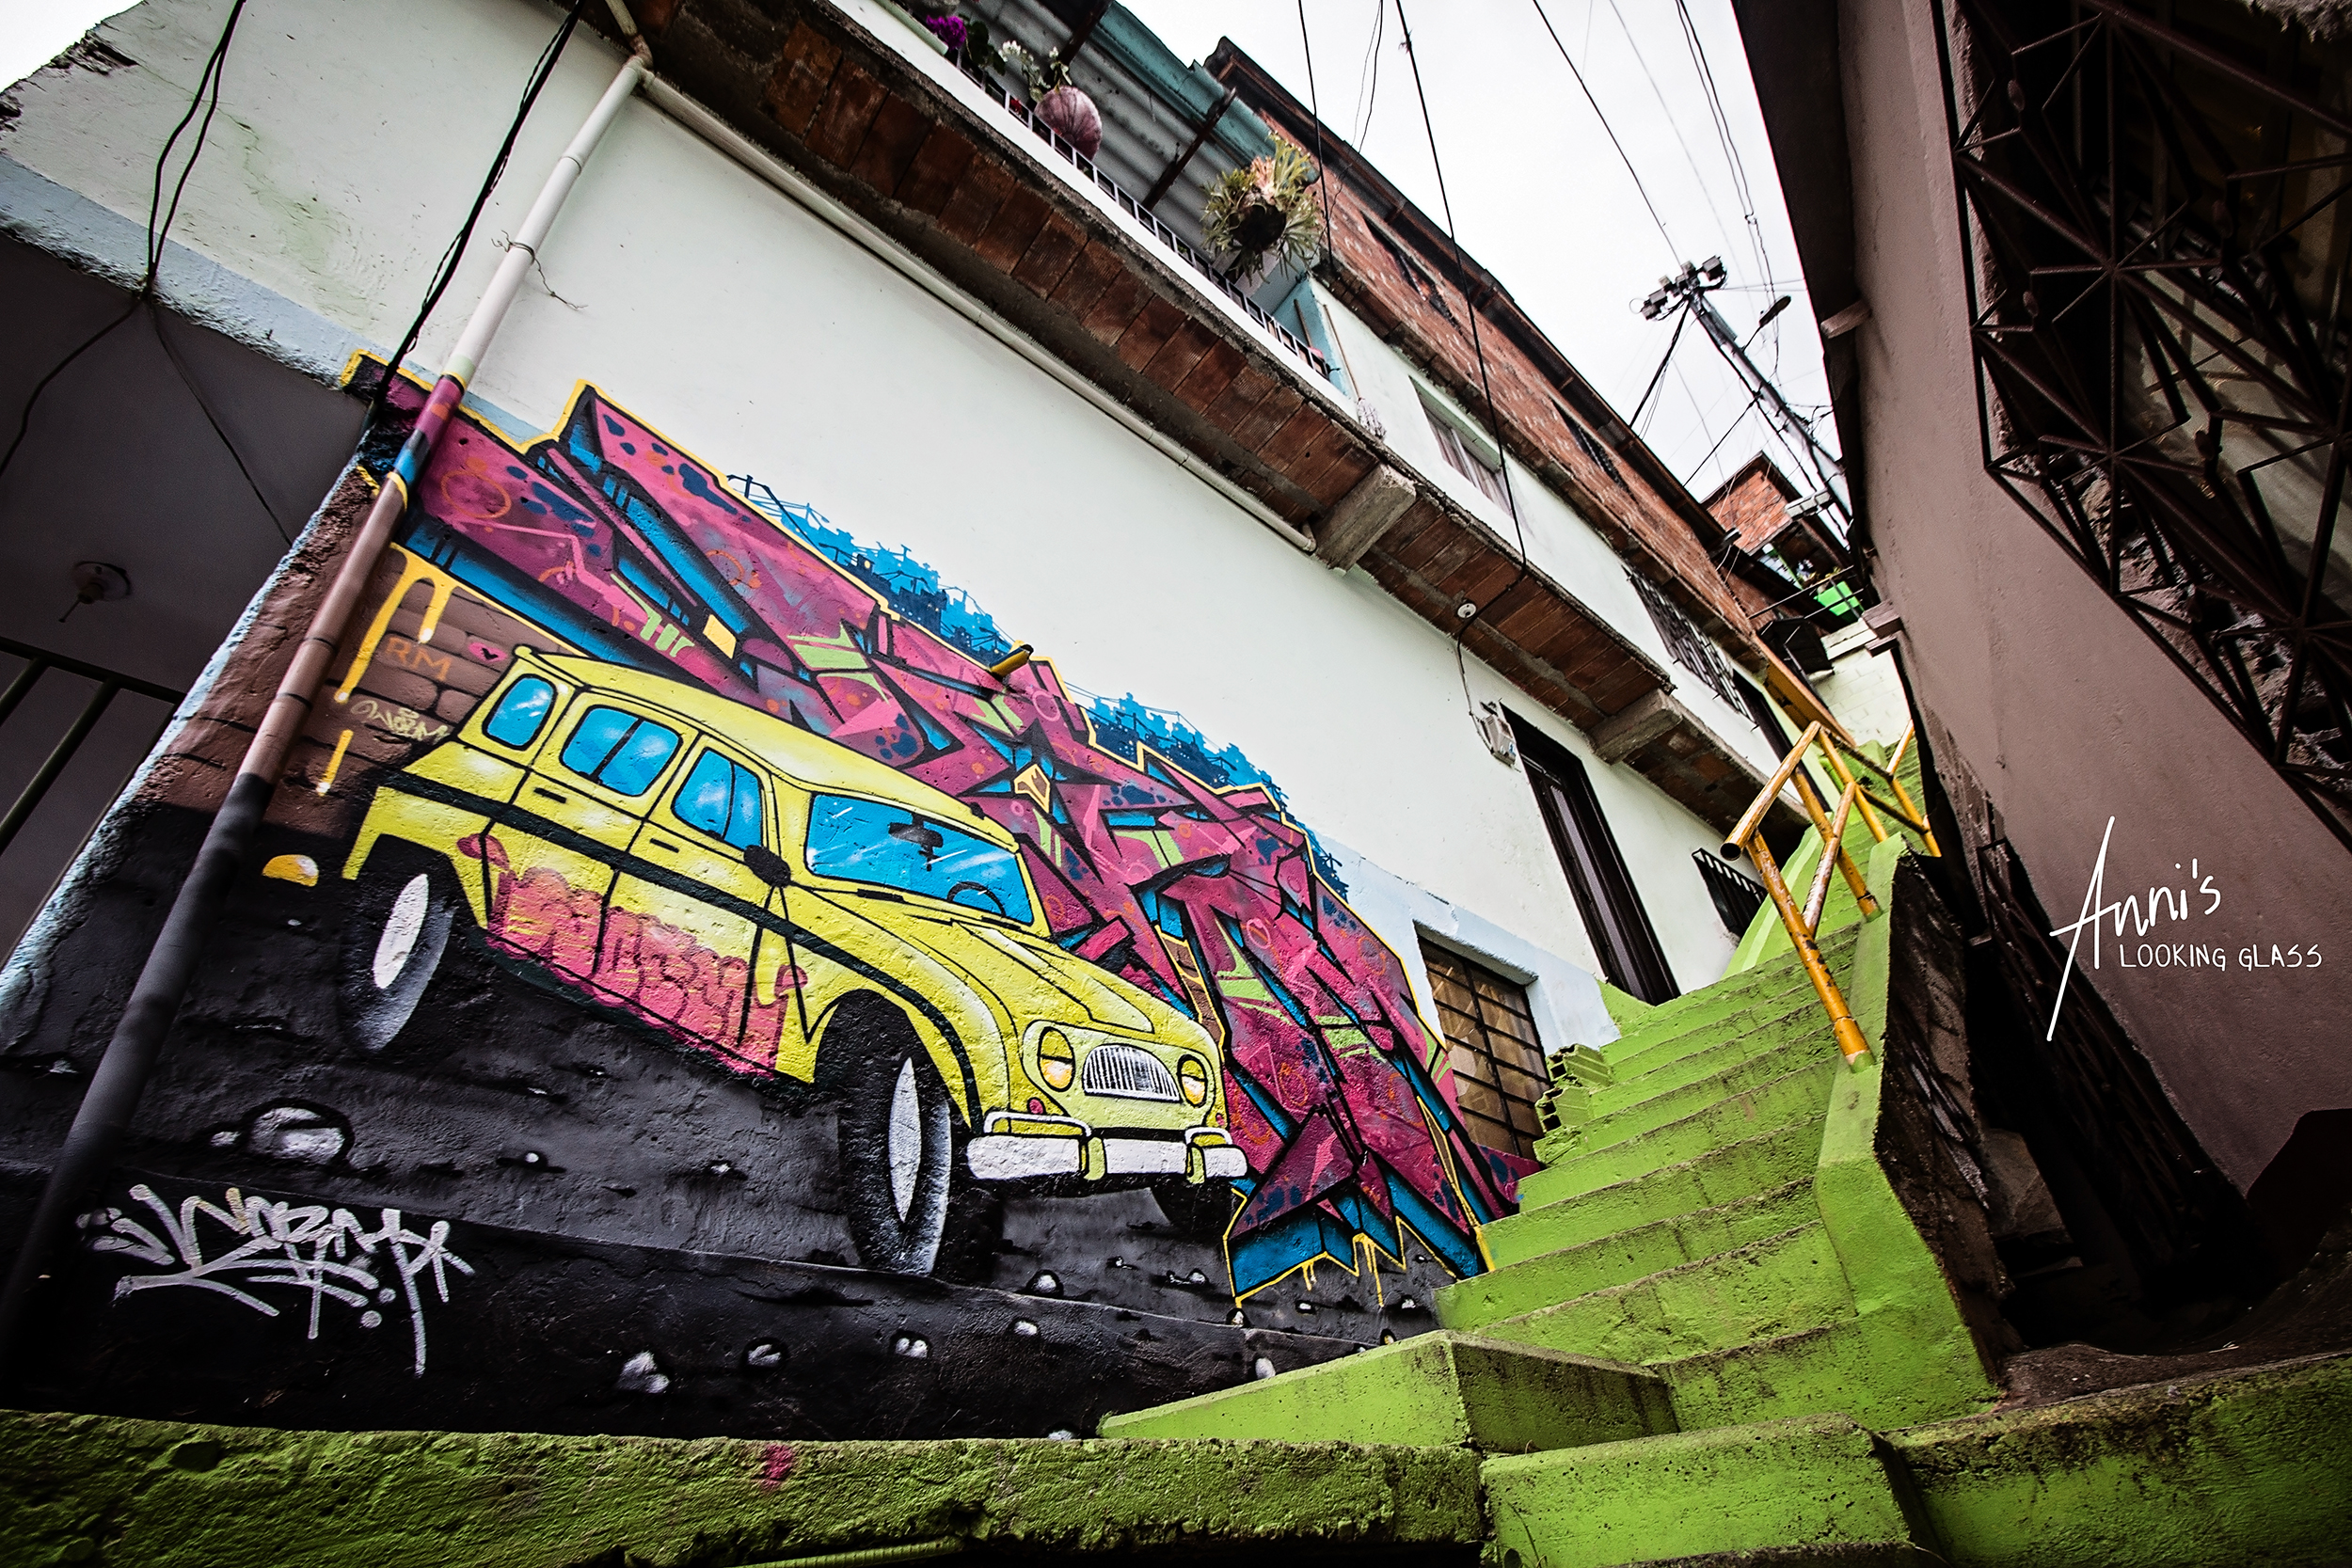 6 - Visiting Colombia and photographing the street art in Medellin was a dream come true for me